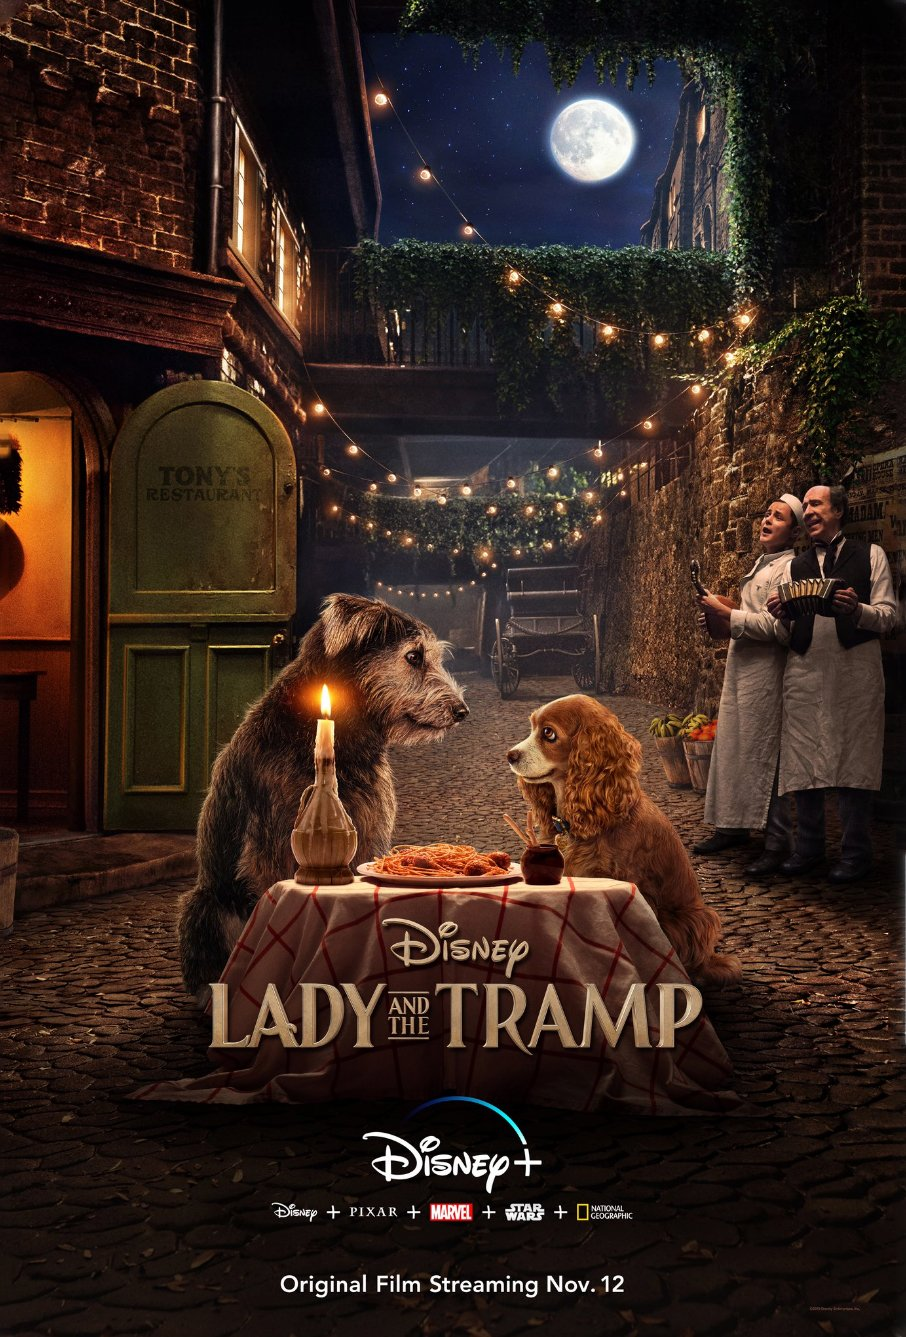 disney's full lady and the tramp spaghetti poster